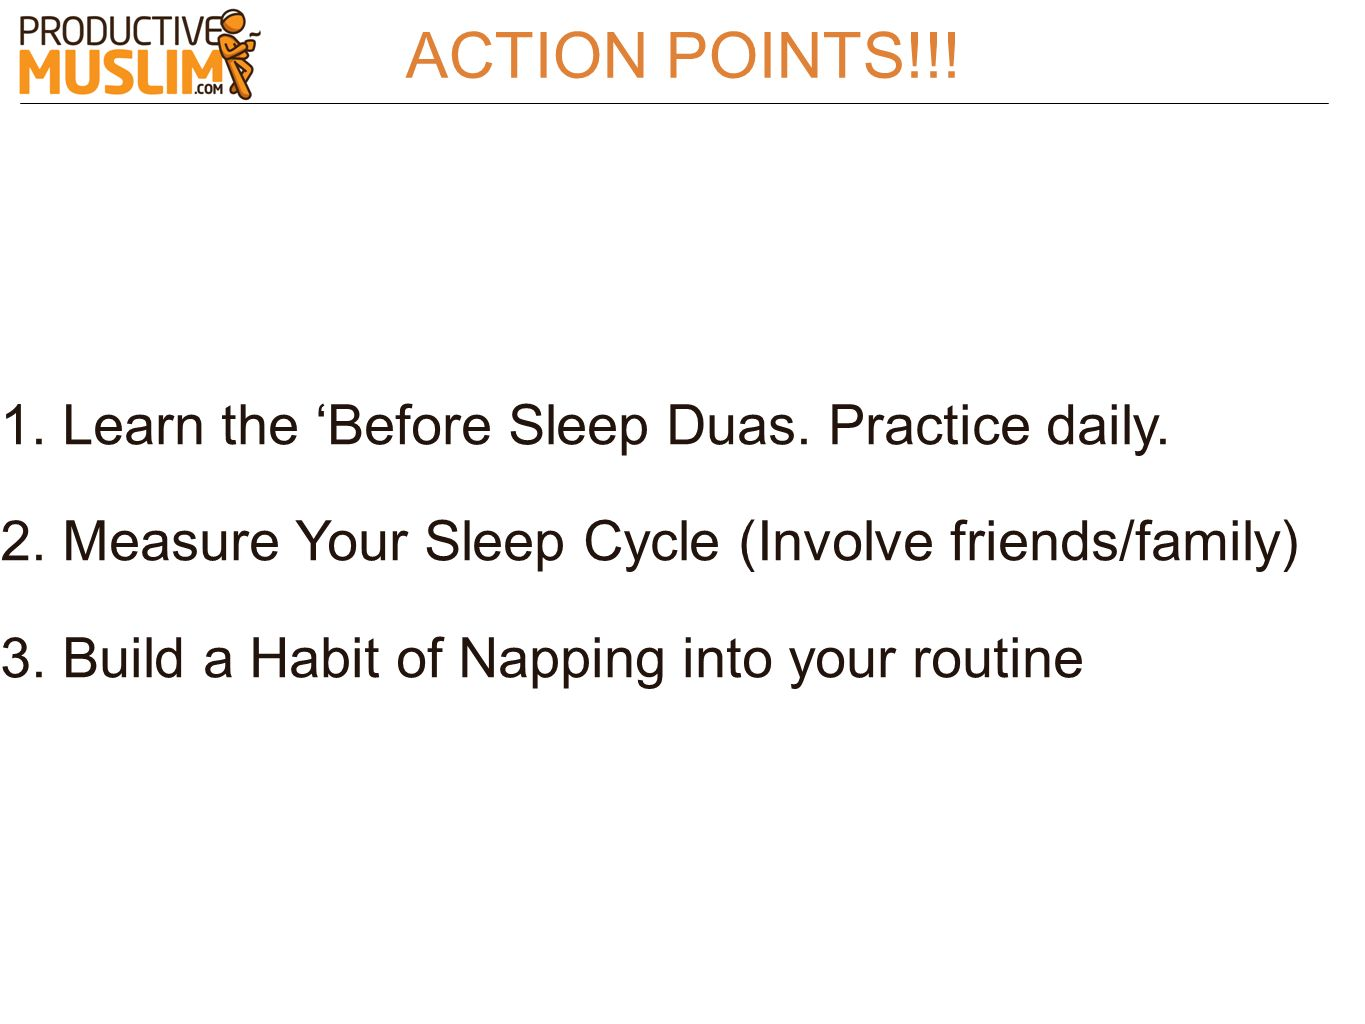 ACTION POINTS!!! 1. Learn the Before Sleep Duas. Practice daily. 2. Measure Your Sleep Cycle (Involve friends/family) 3. Build a Habit of Napping into